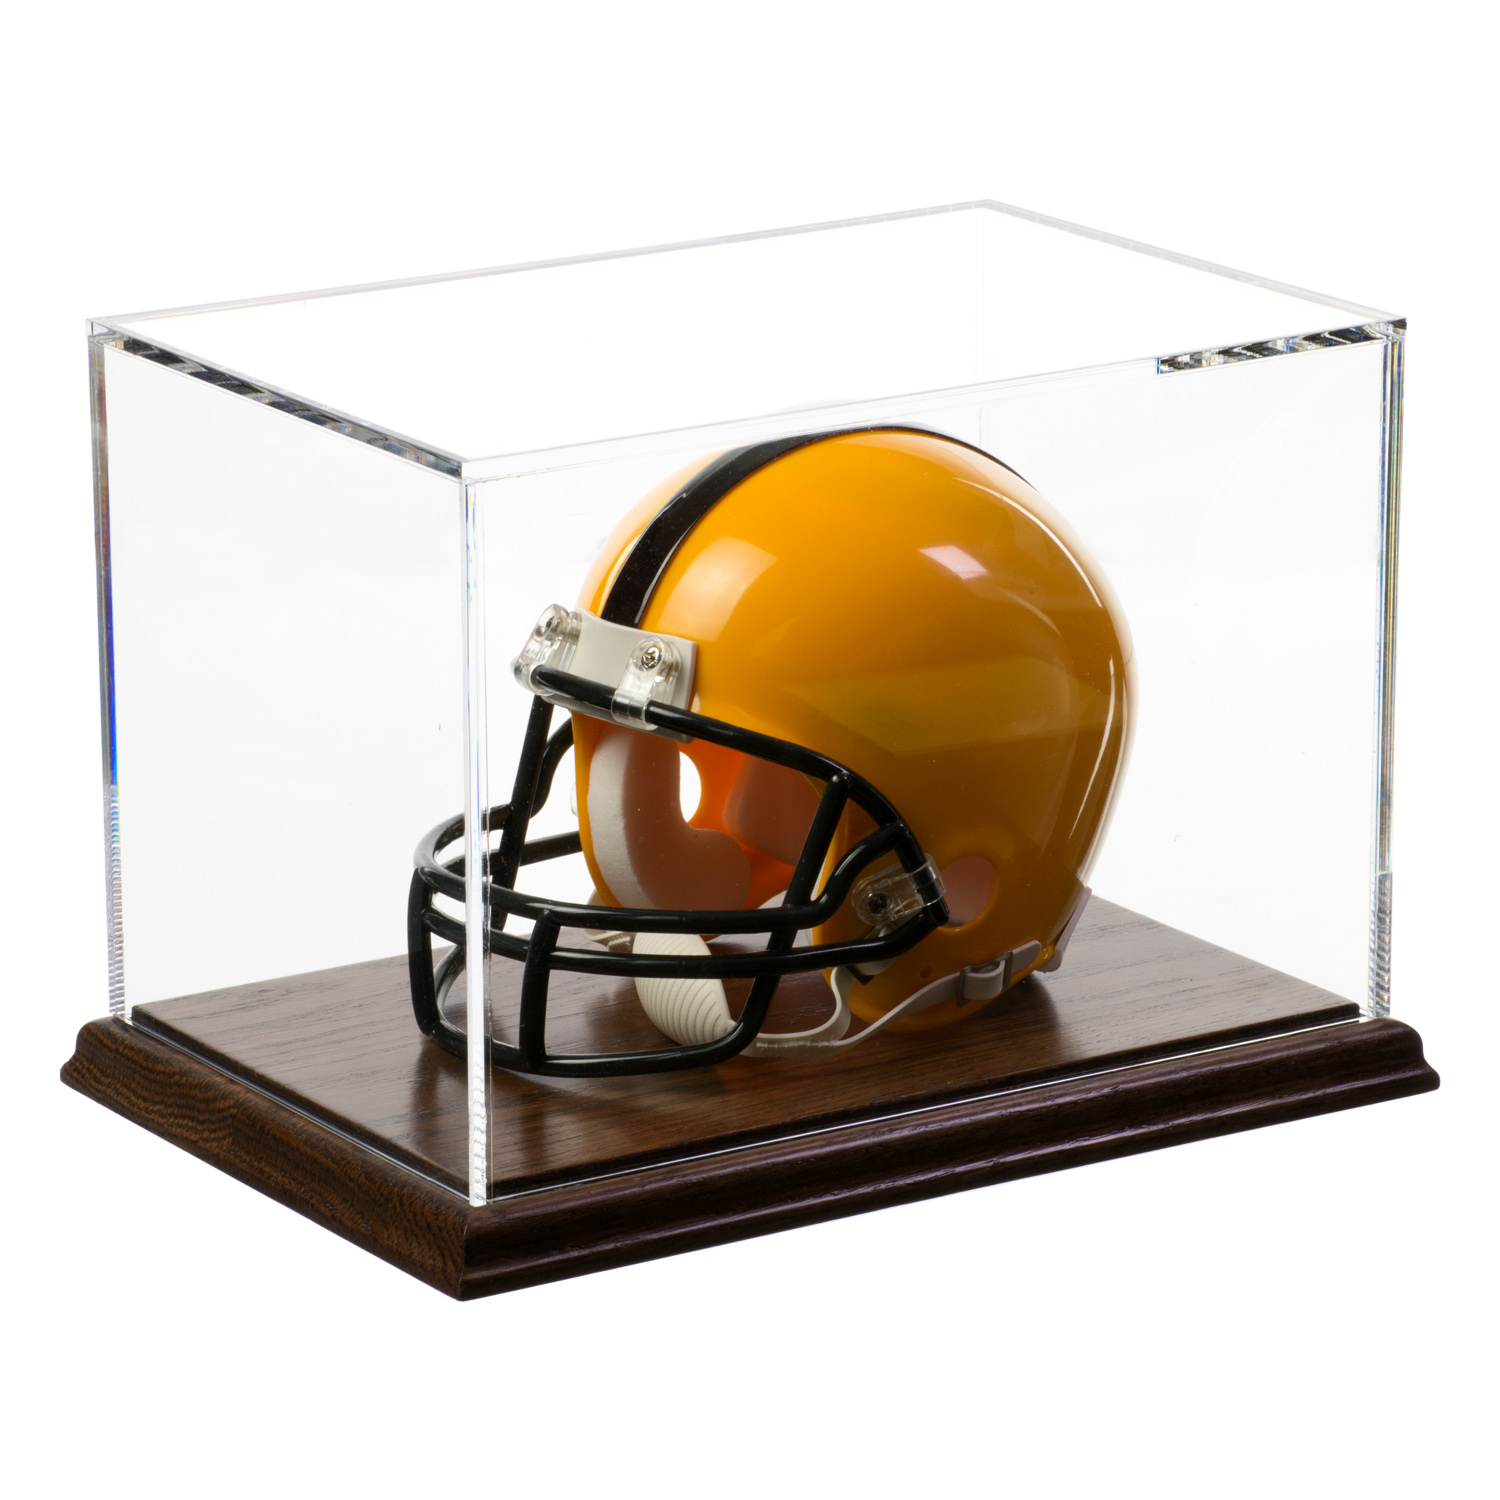 Mini Football Helmet Display Case with Wooden Base - Buy ...